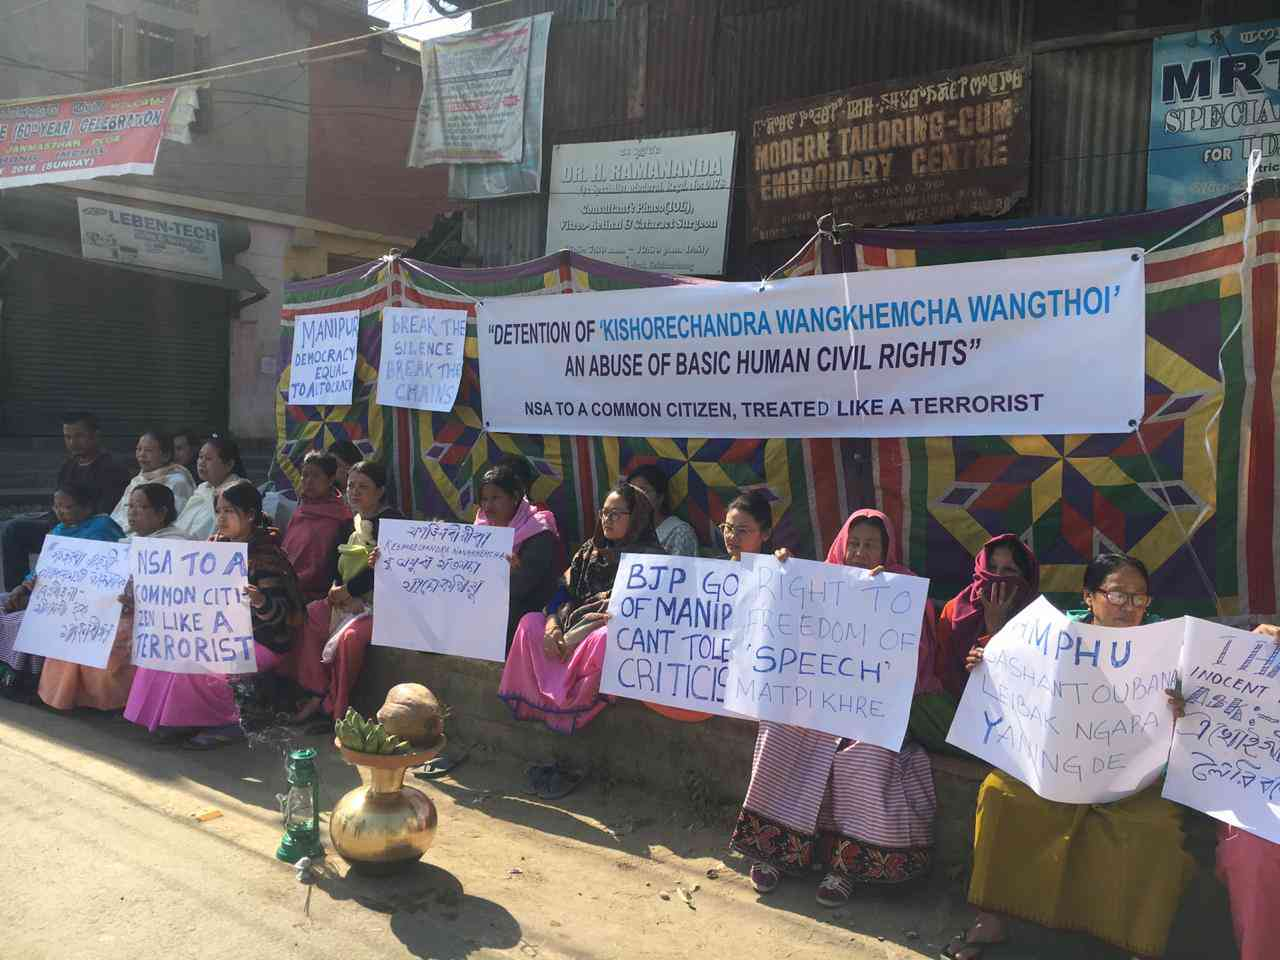 Protestors demand the release of arrested journalist Kishorechandra Wangkhem.